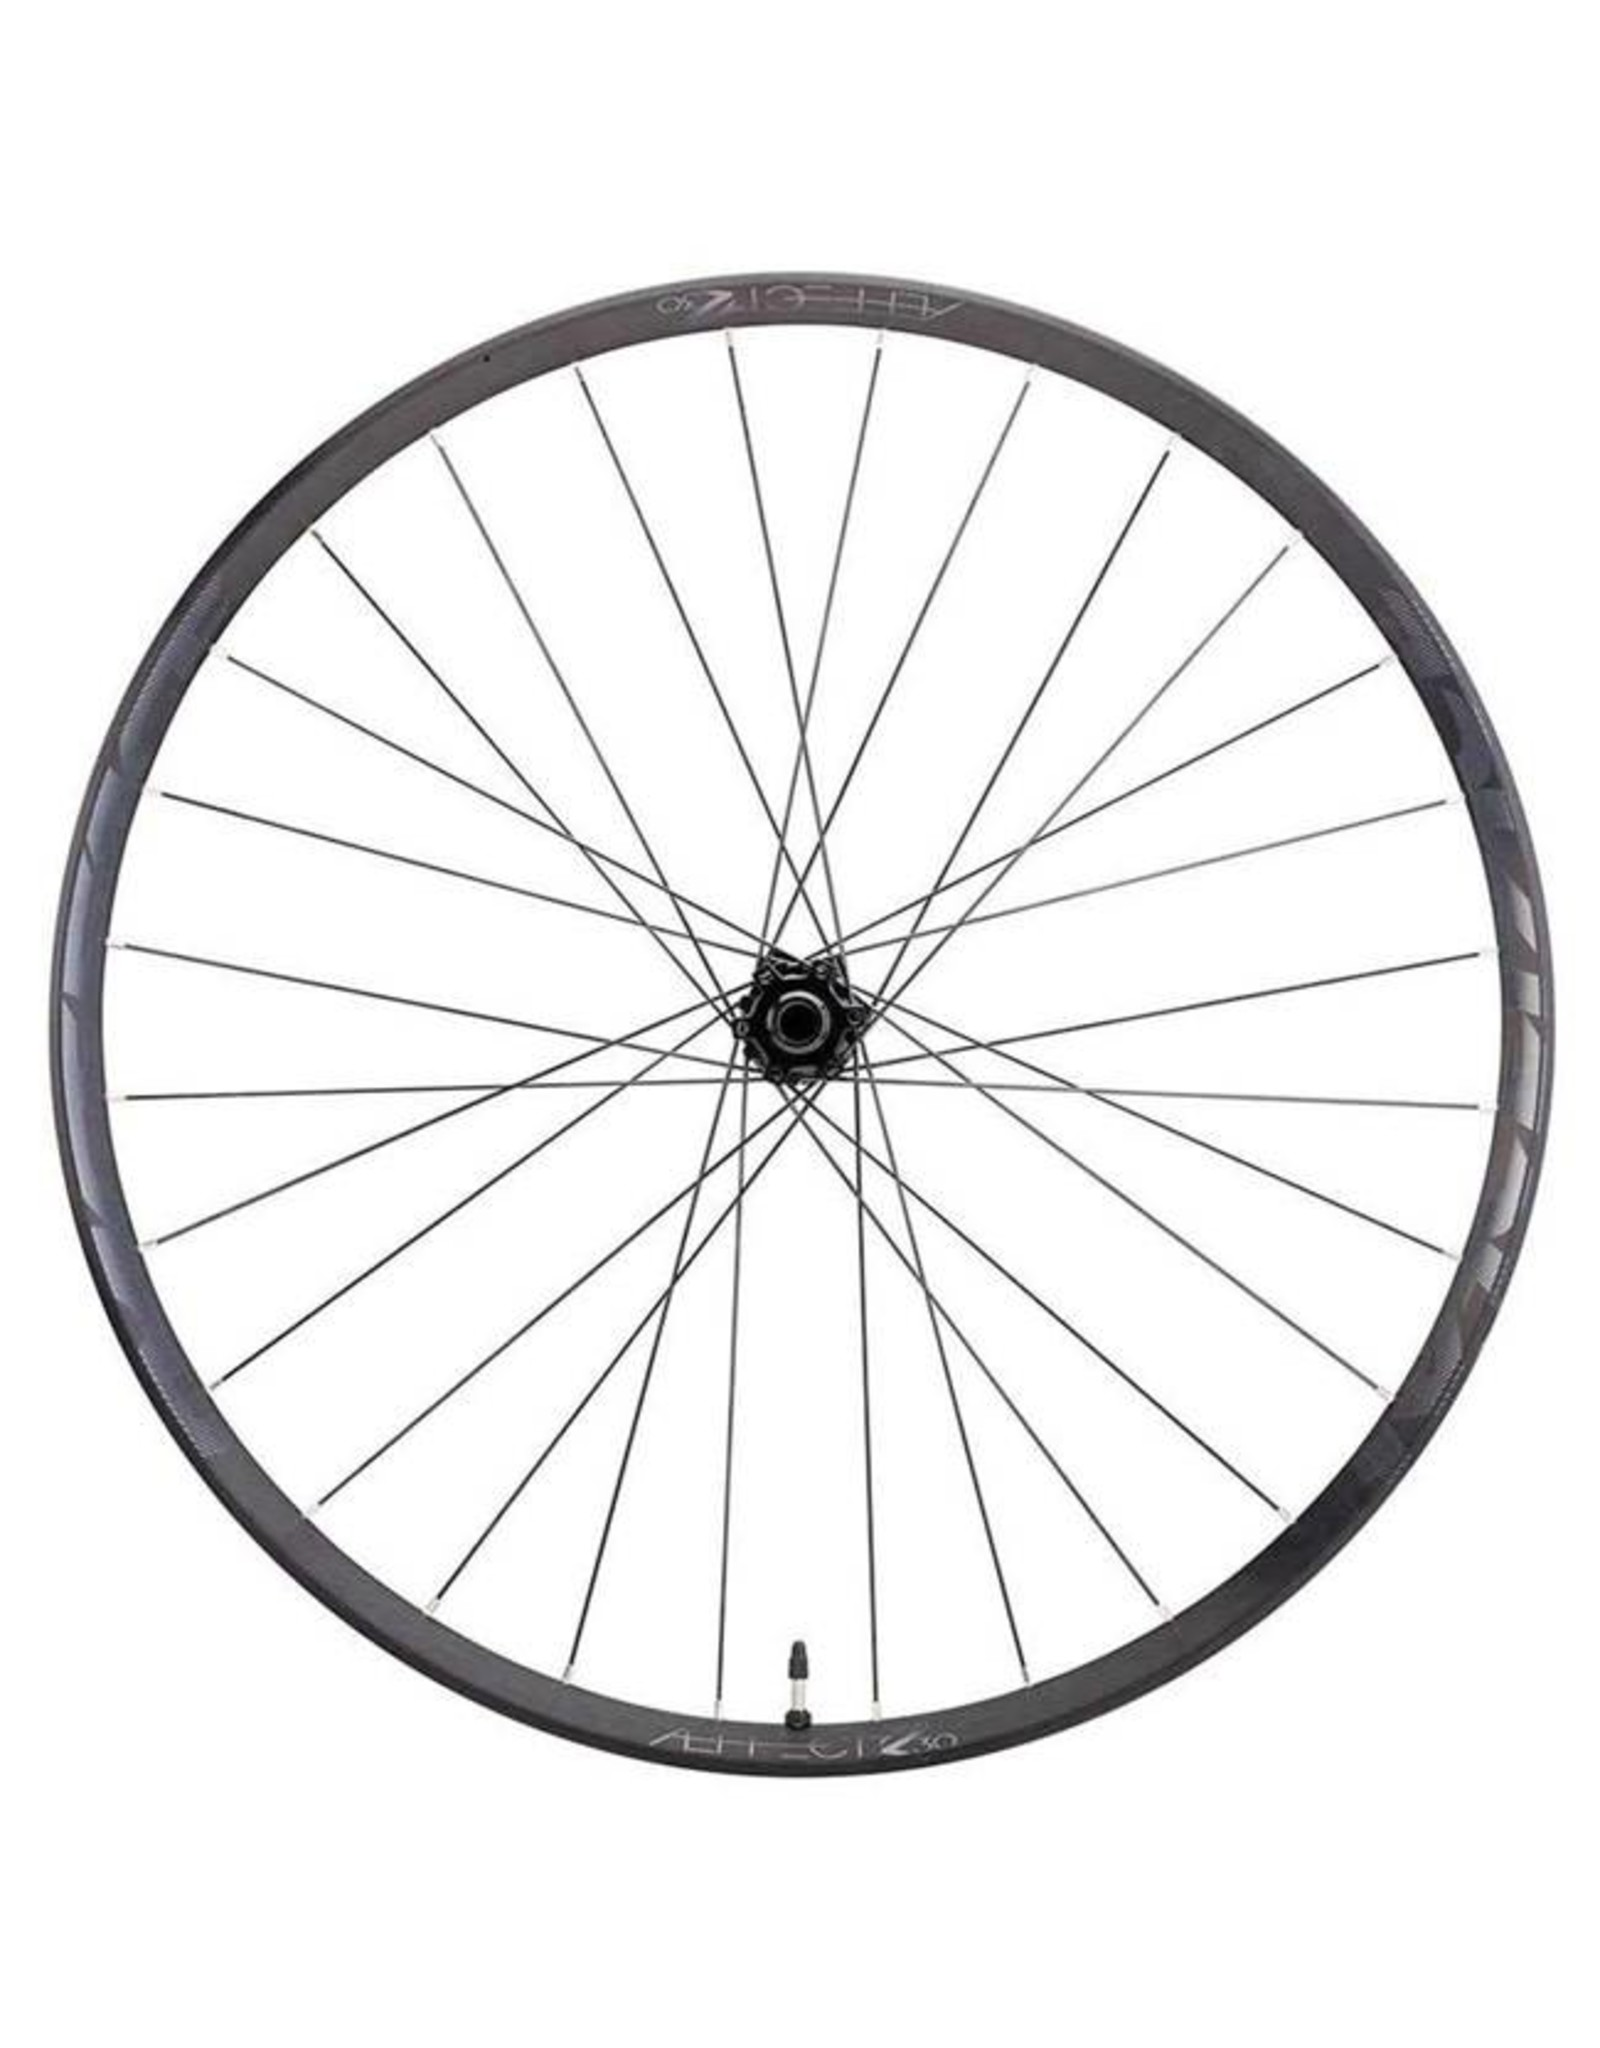 "RaceFace RaceFace Aeffect R Rear Wheel: 27.5"", Alloy Rim, 12 x 148mm Thru Axle, SRAM XD Freehub"